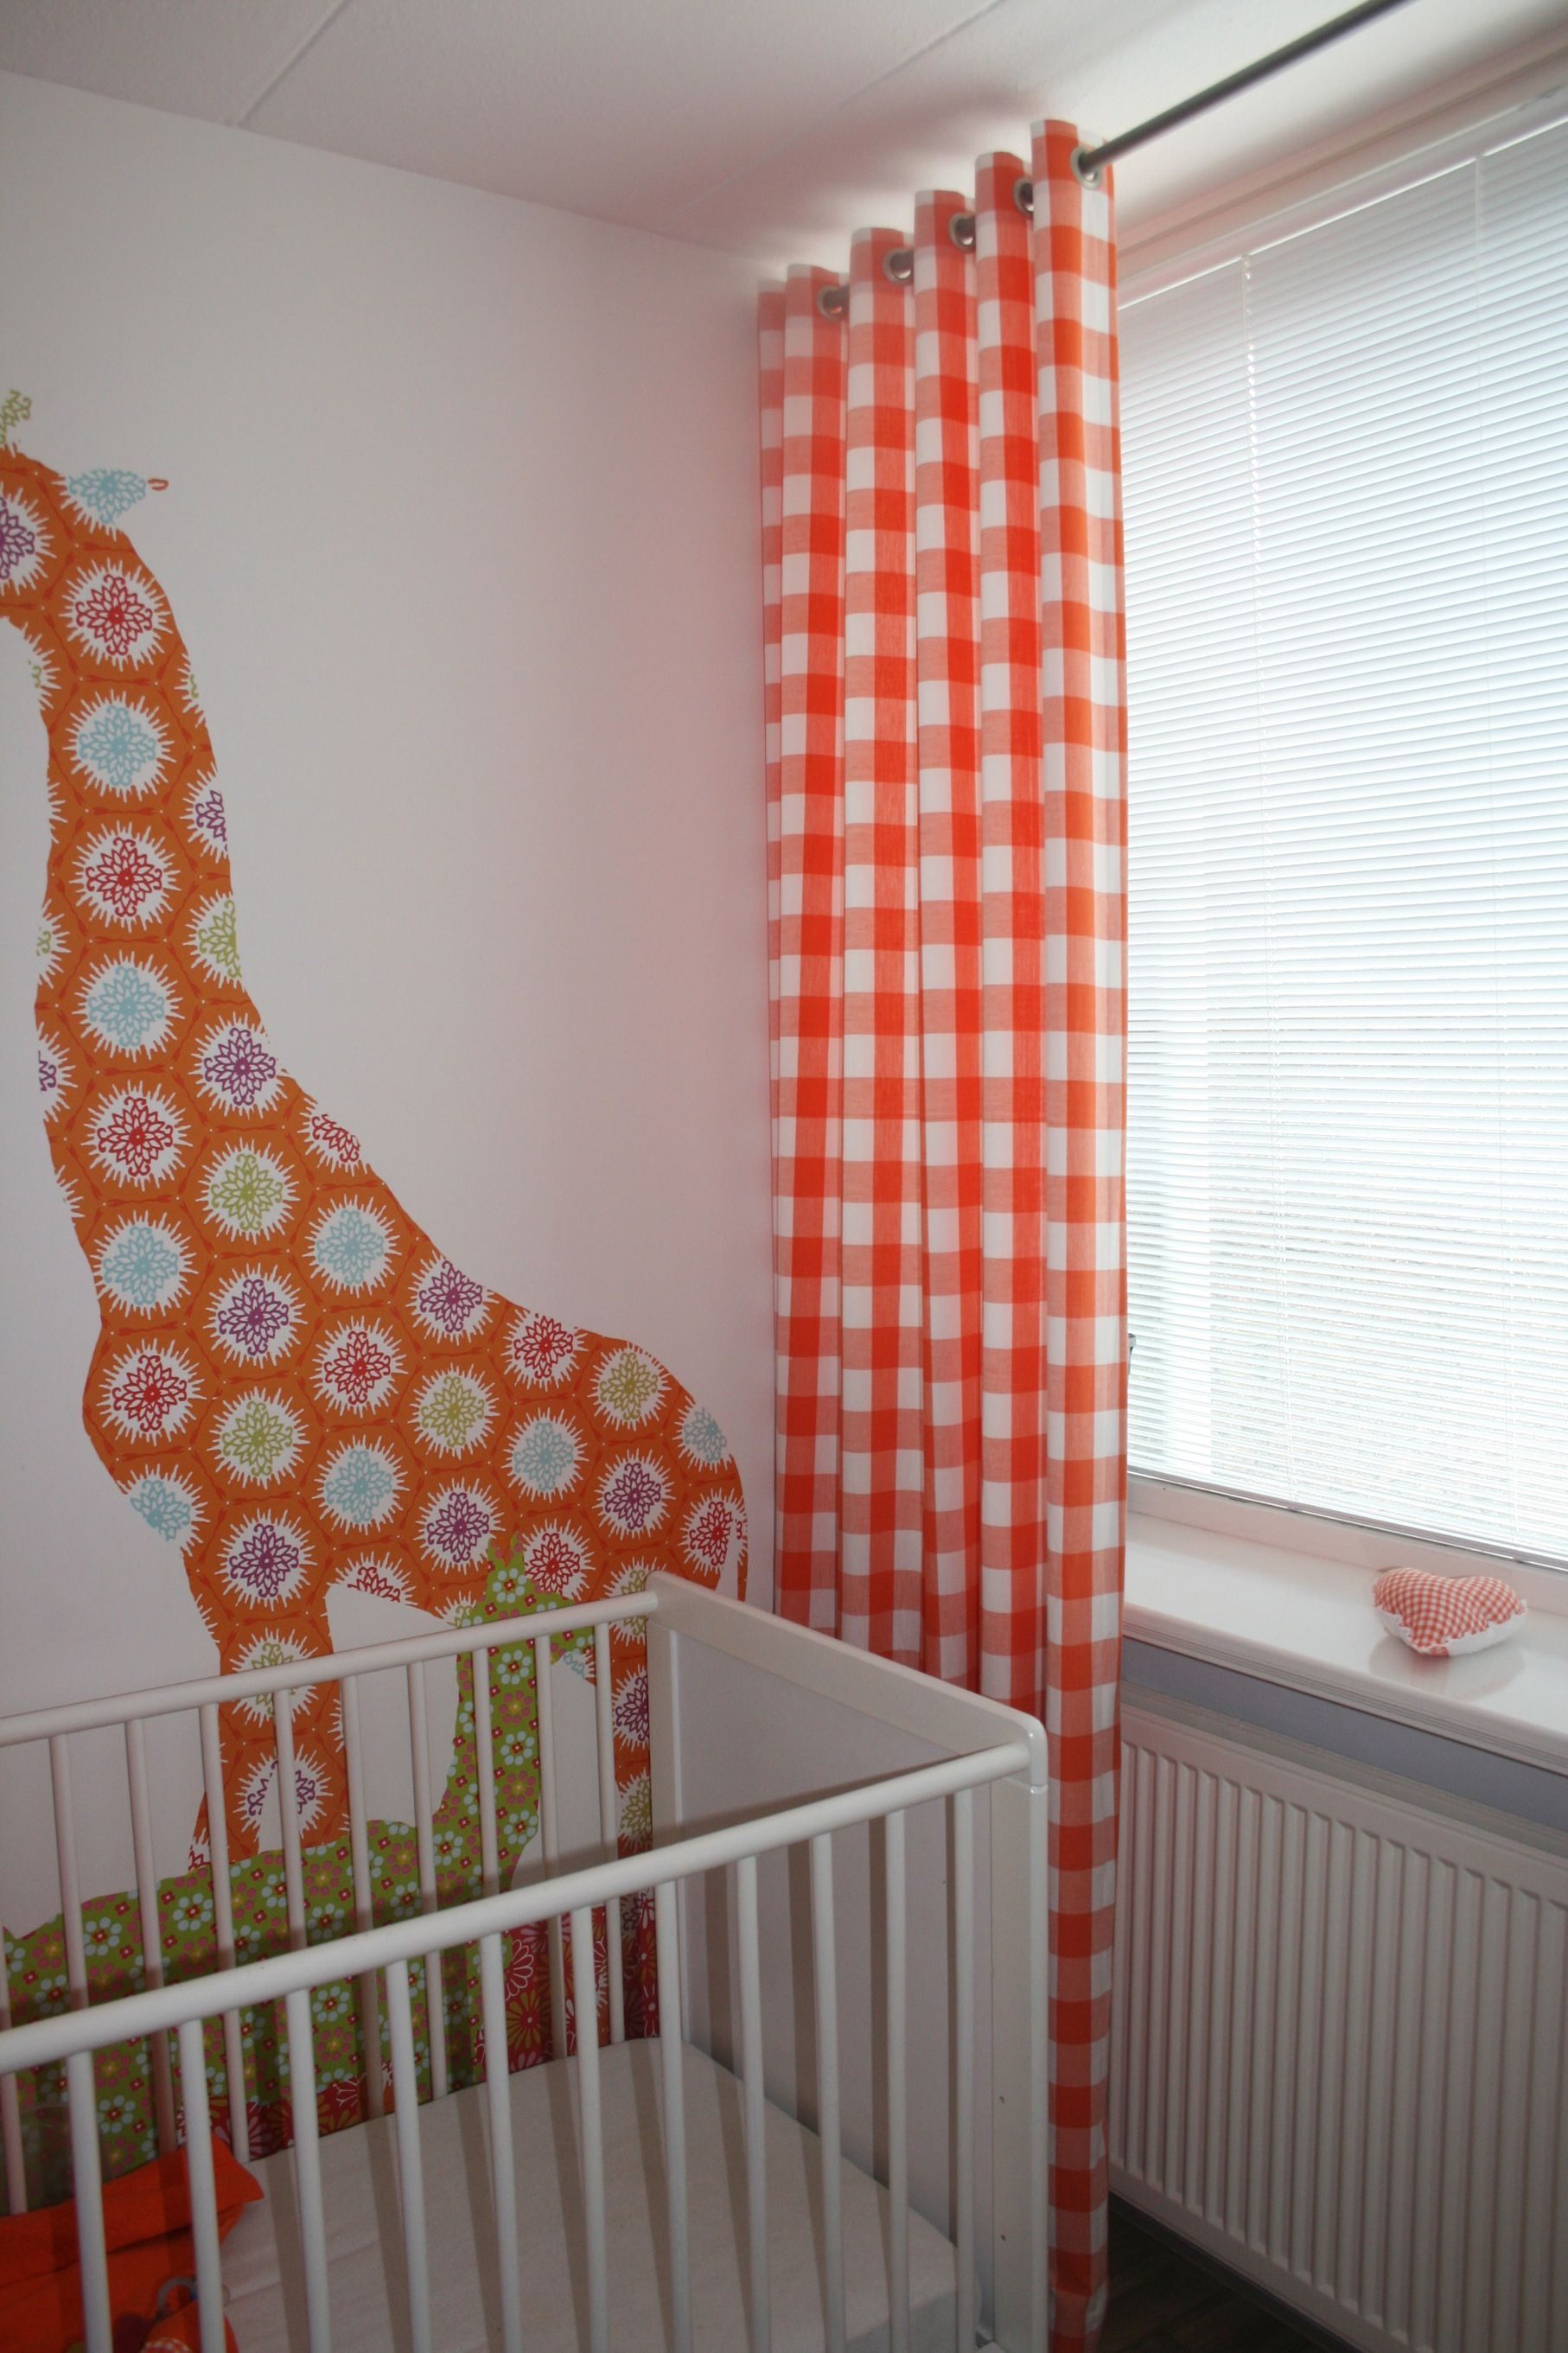 Kinderkamer gordijnen curtains via boer bontig gordijnen met print pinterest kids - Gordijnen kinderkamer ...